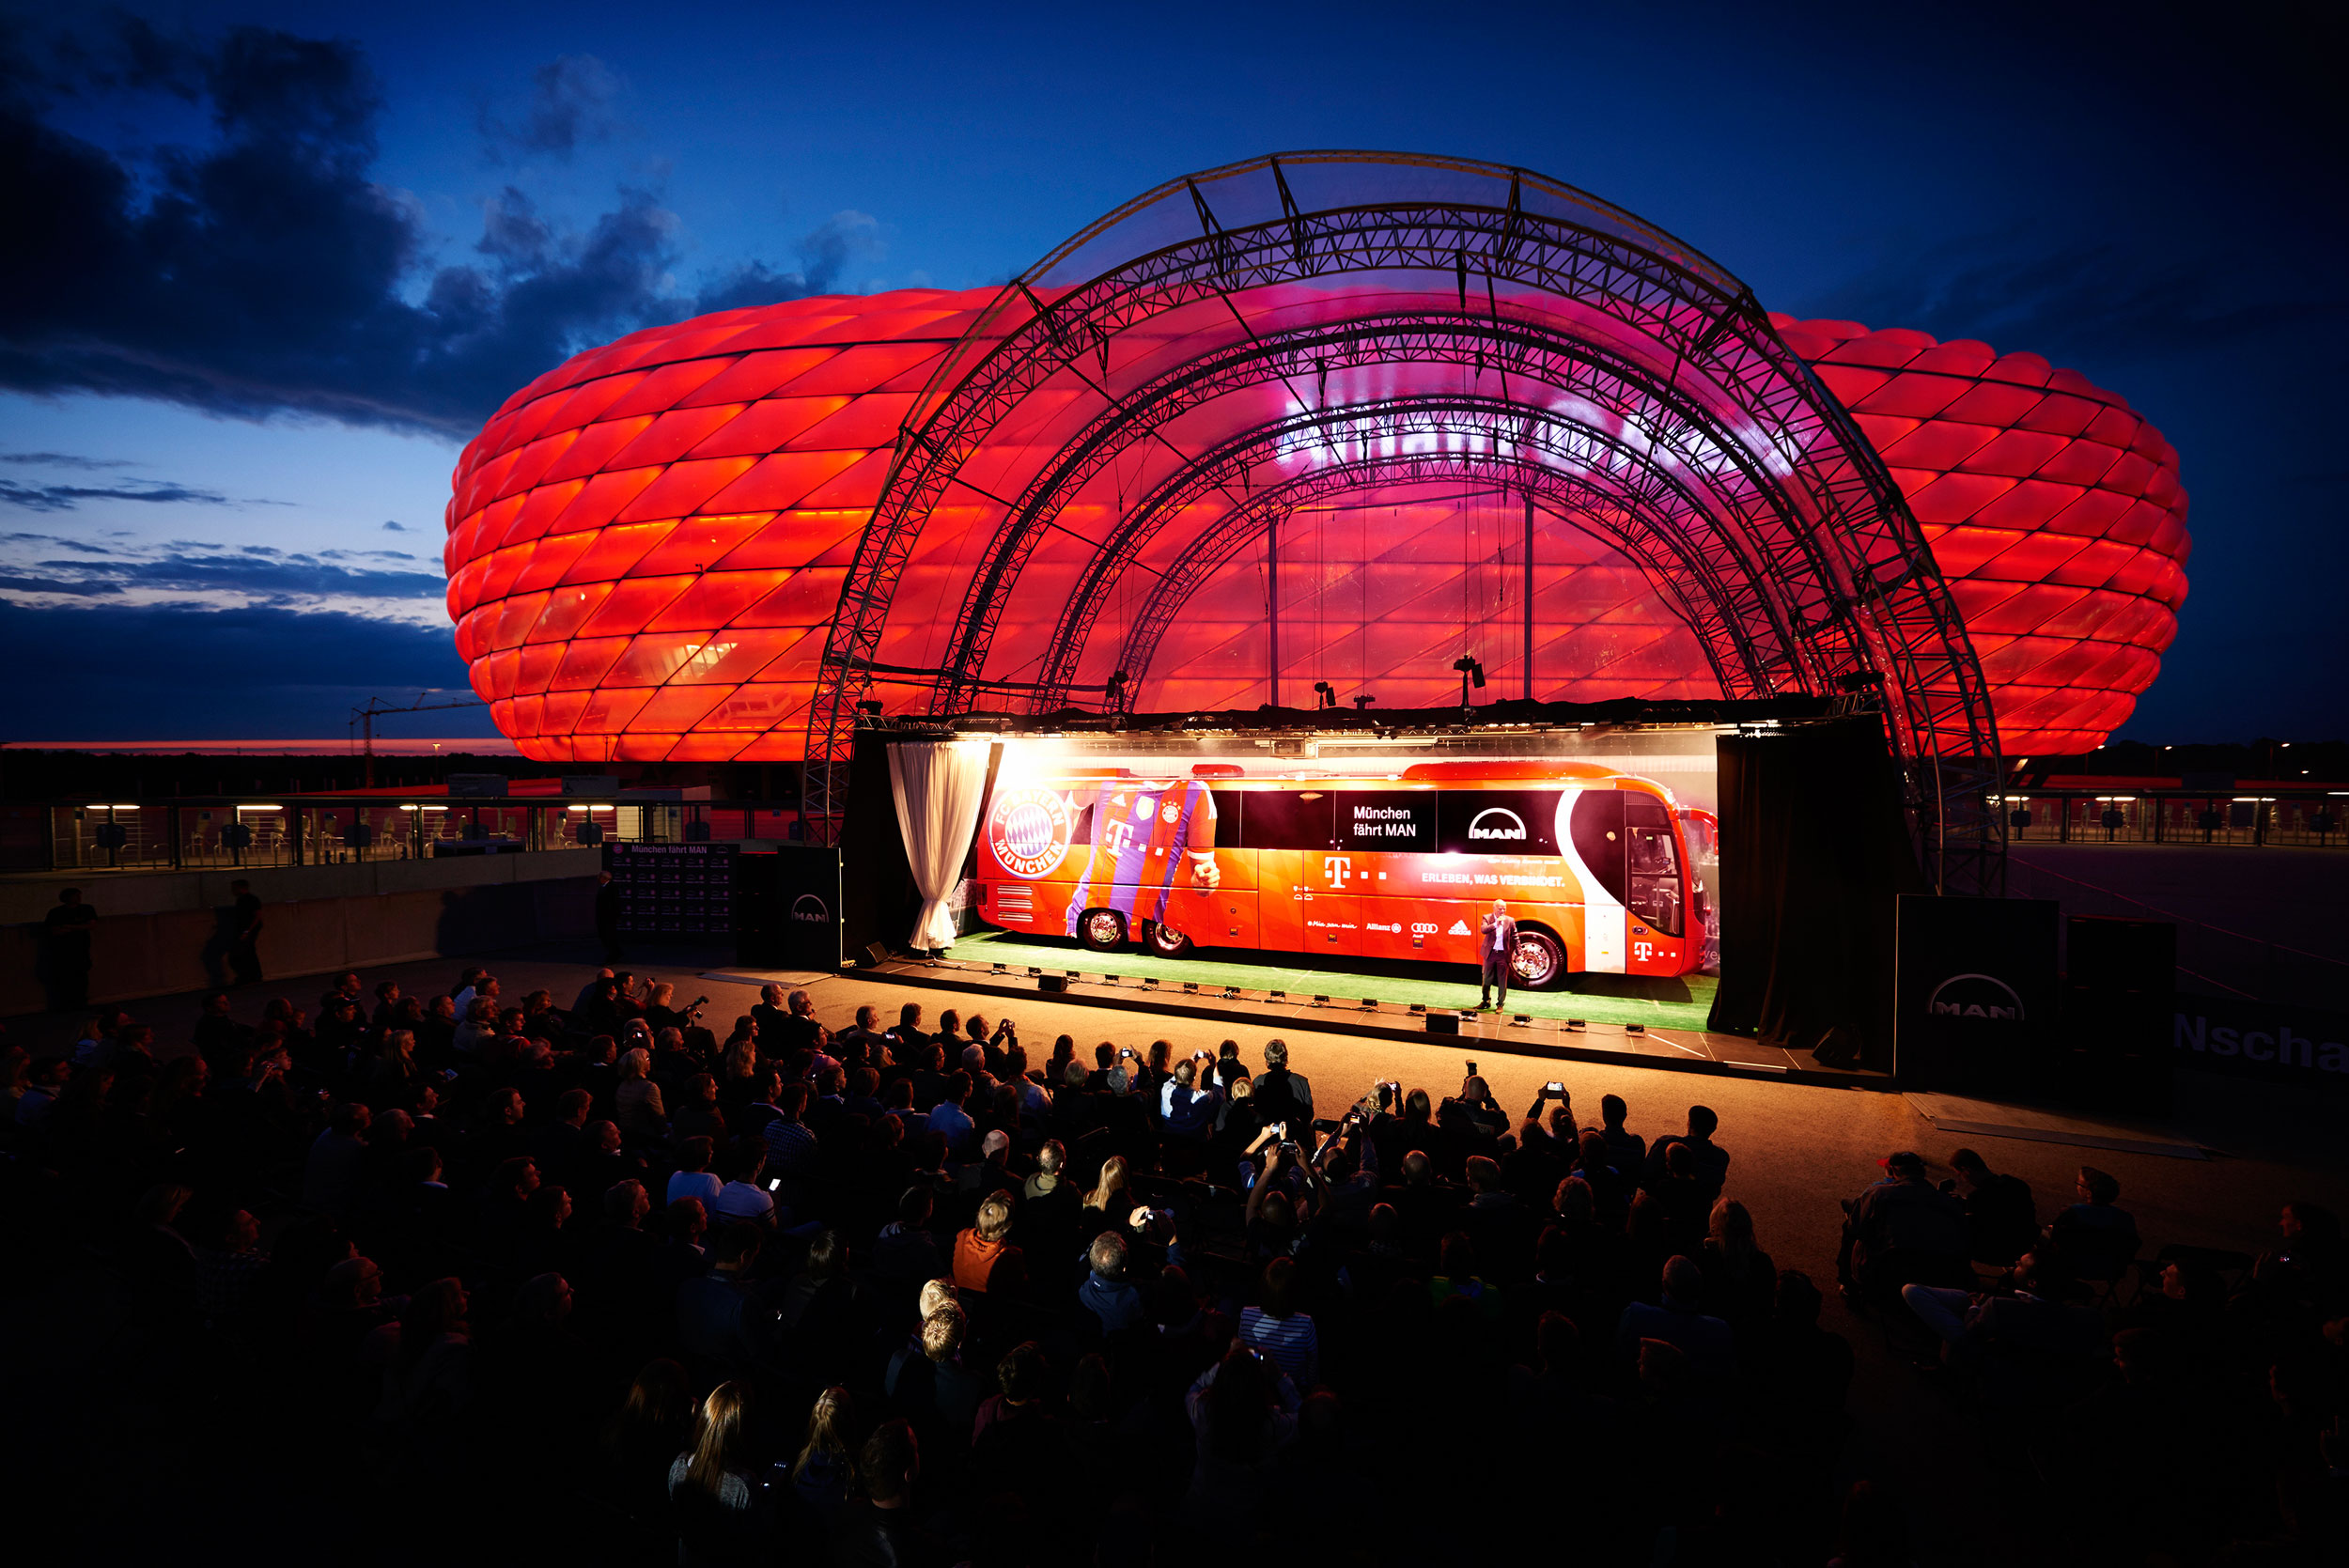 New FC Bayern Munich team bus in front of the Allianz Arena